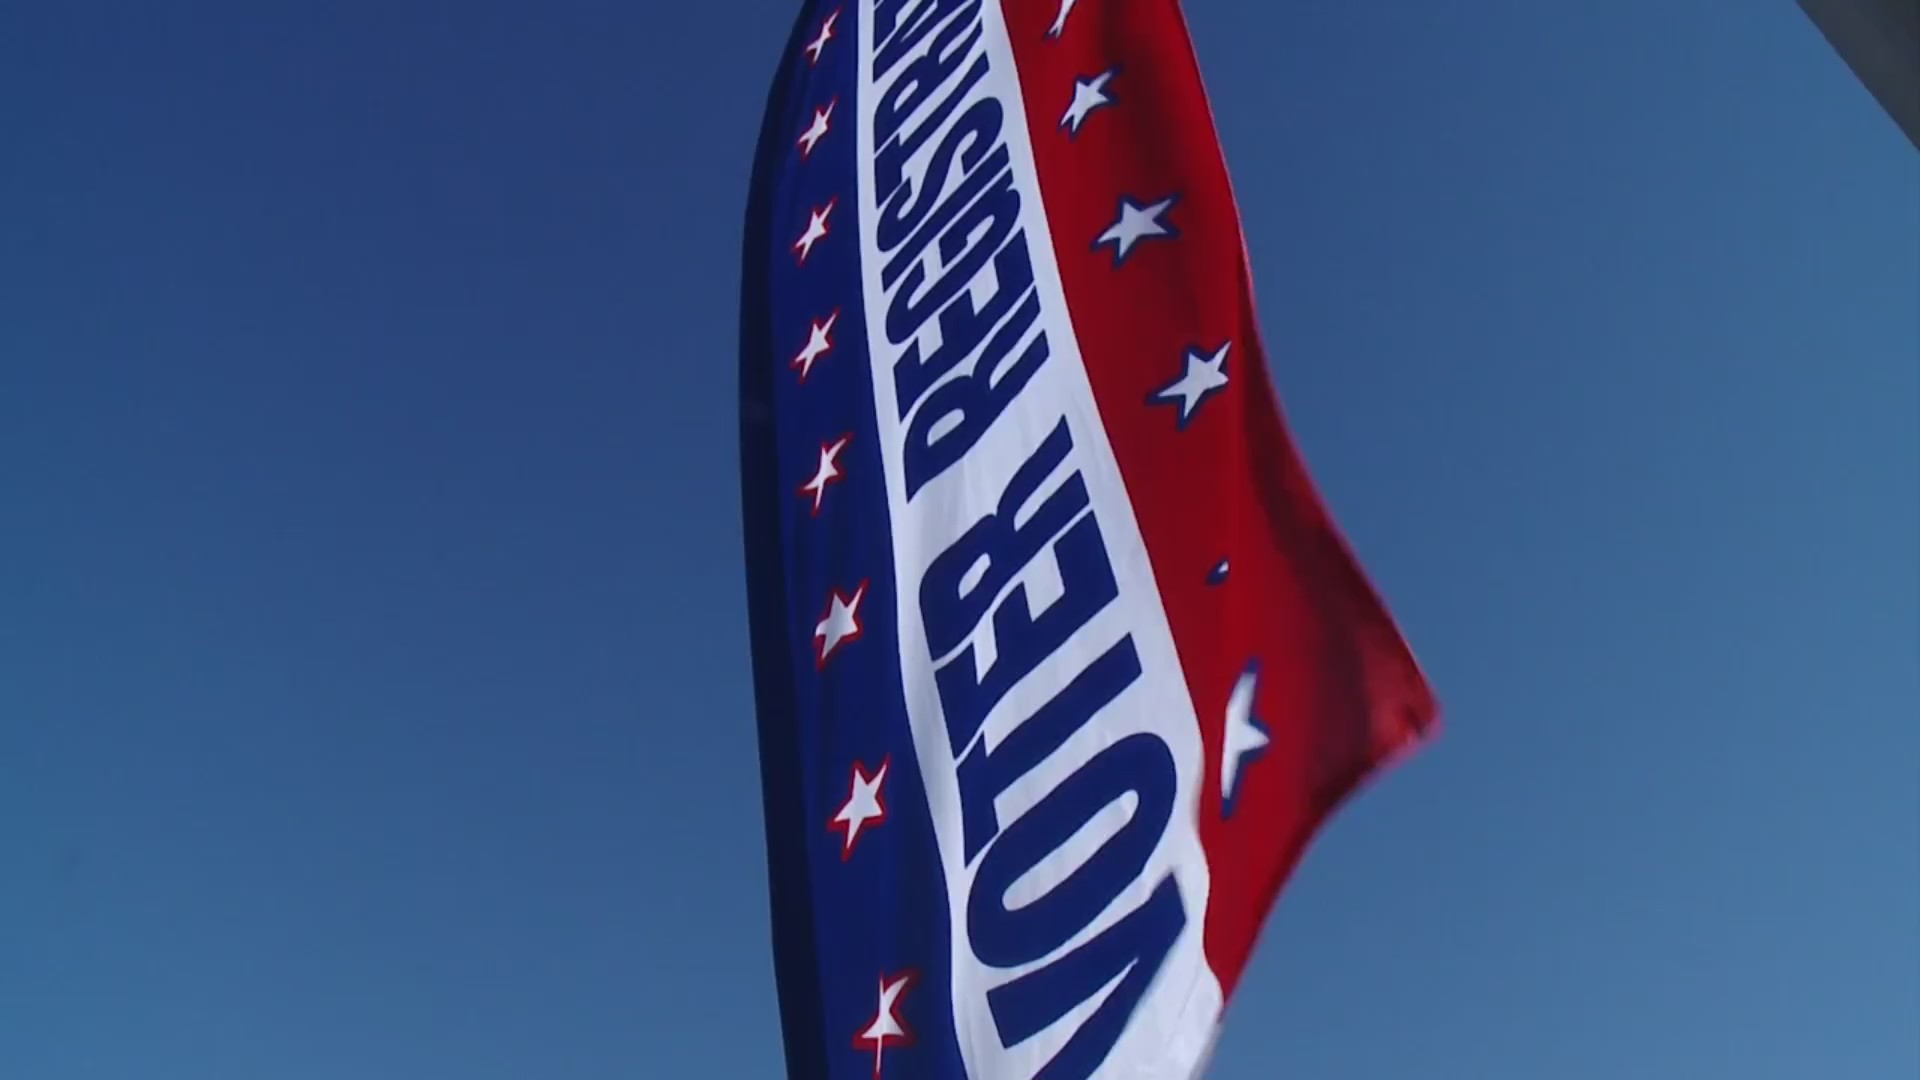 Picture of voter registration flag